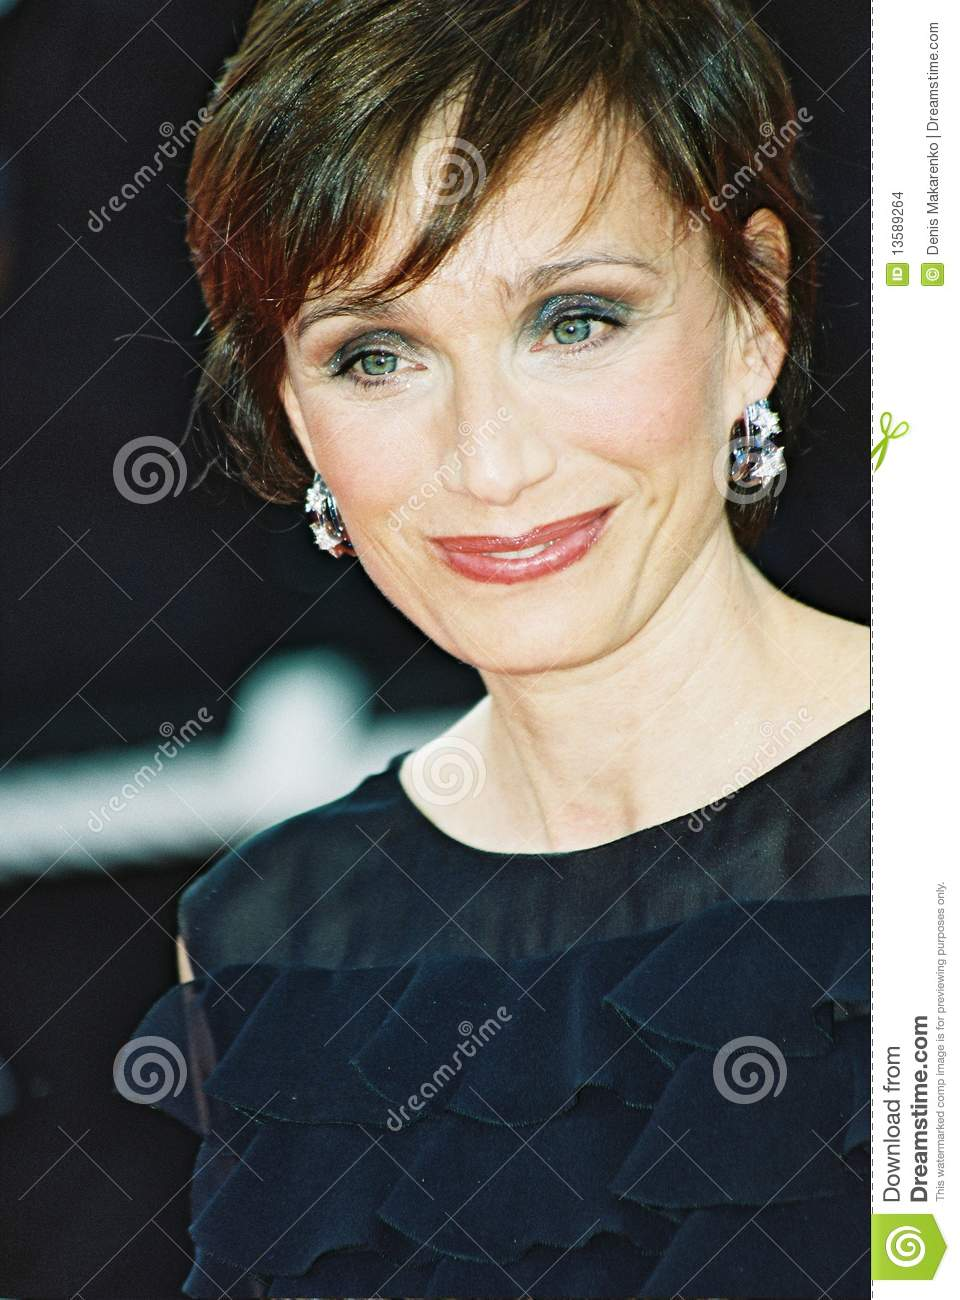 Kristin <b>Scott Thomas</b> Redaktionelles Stockbild - kristin-scott-thomas-13589264